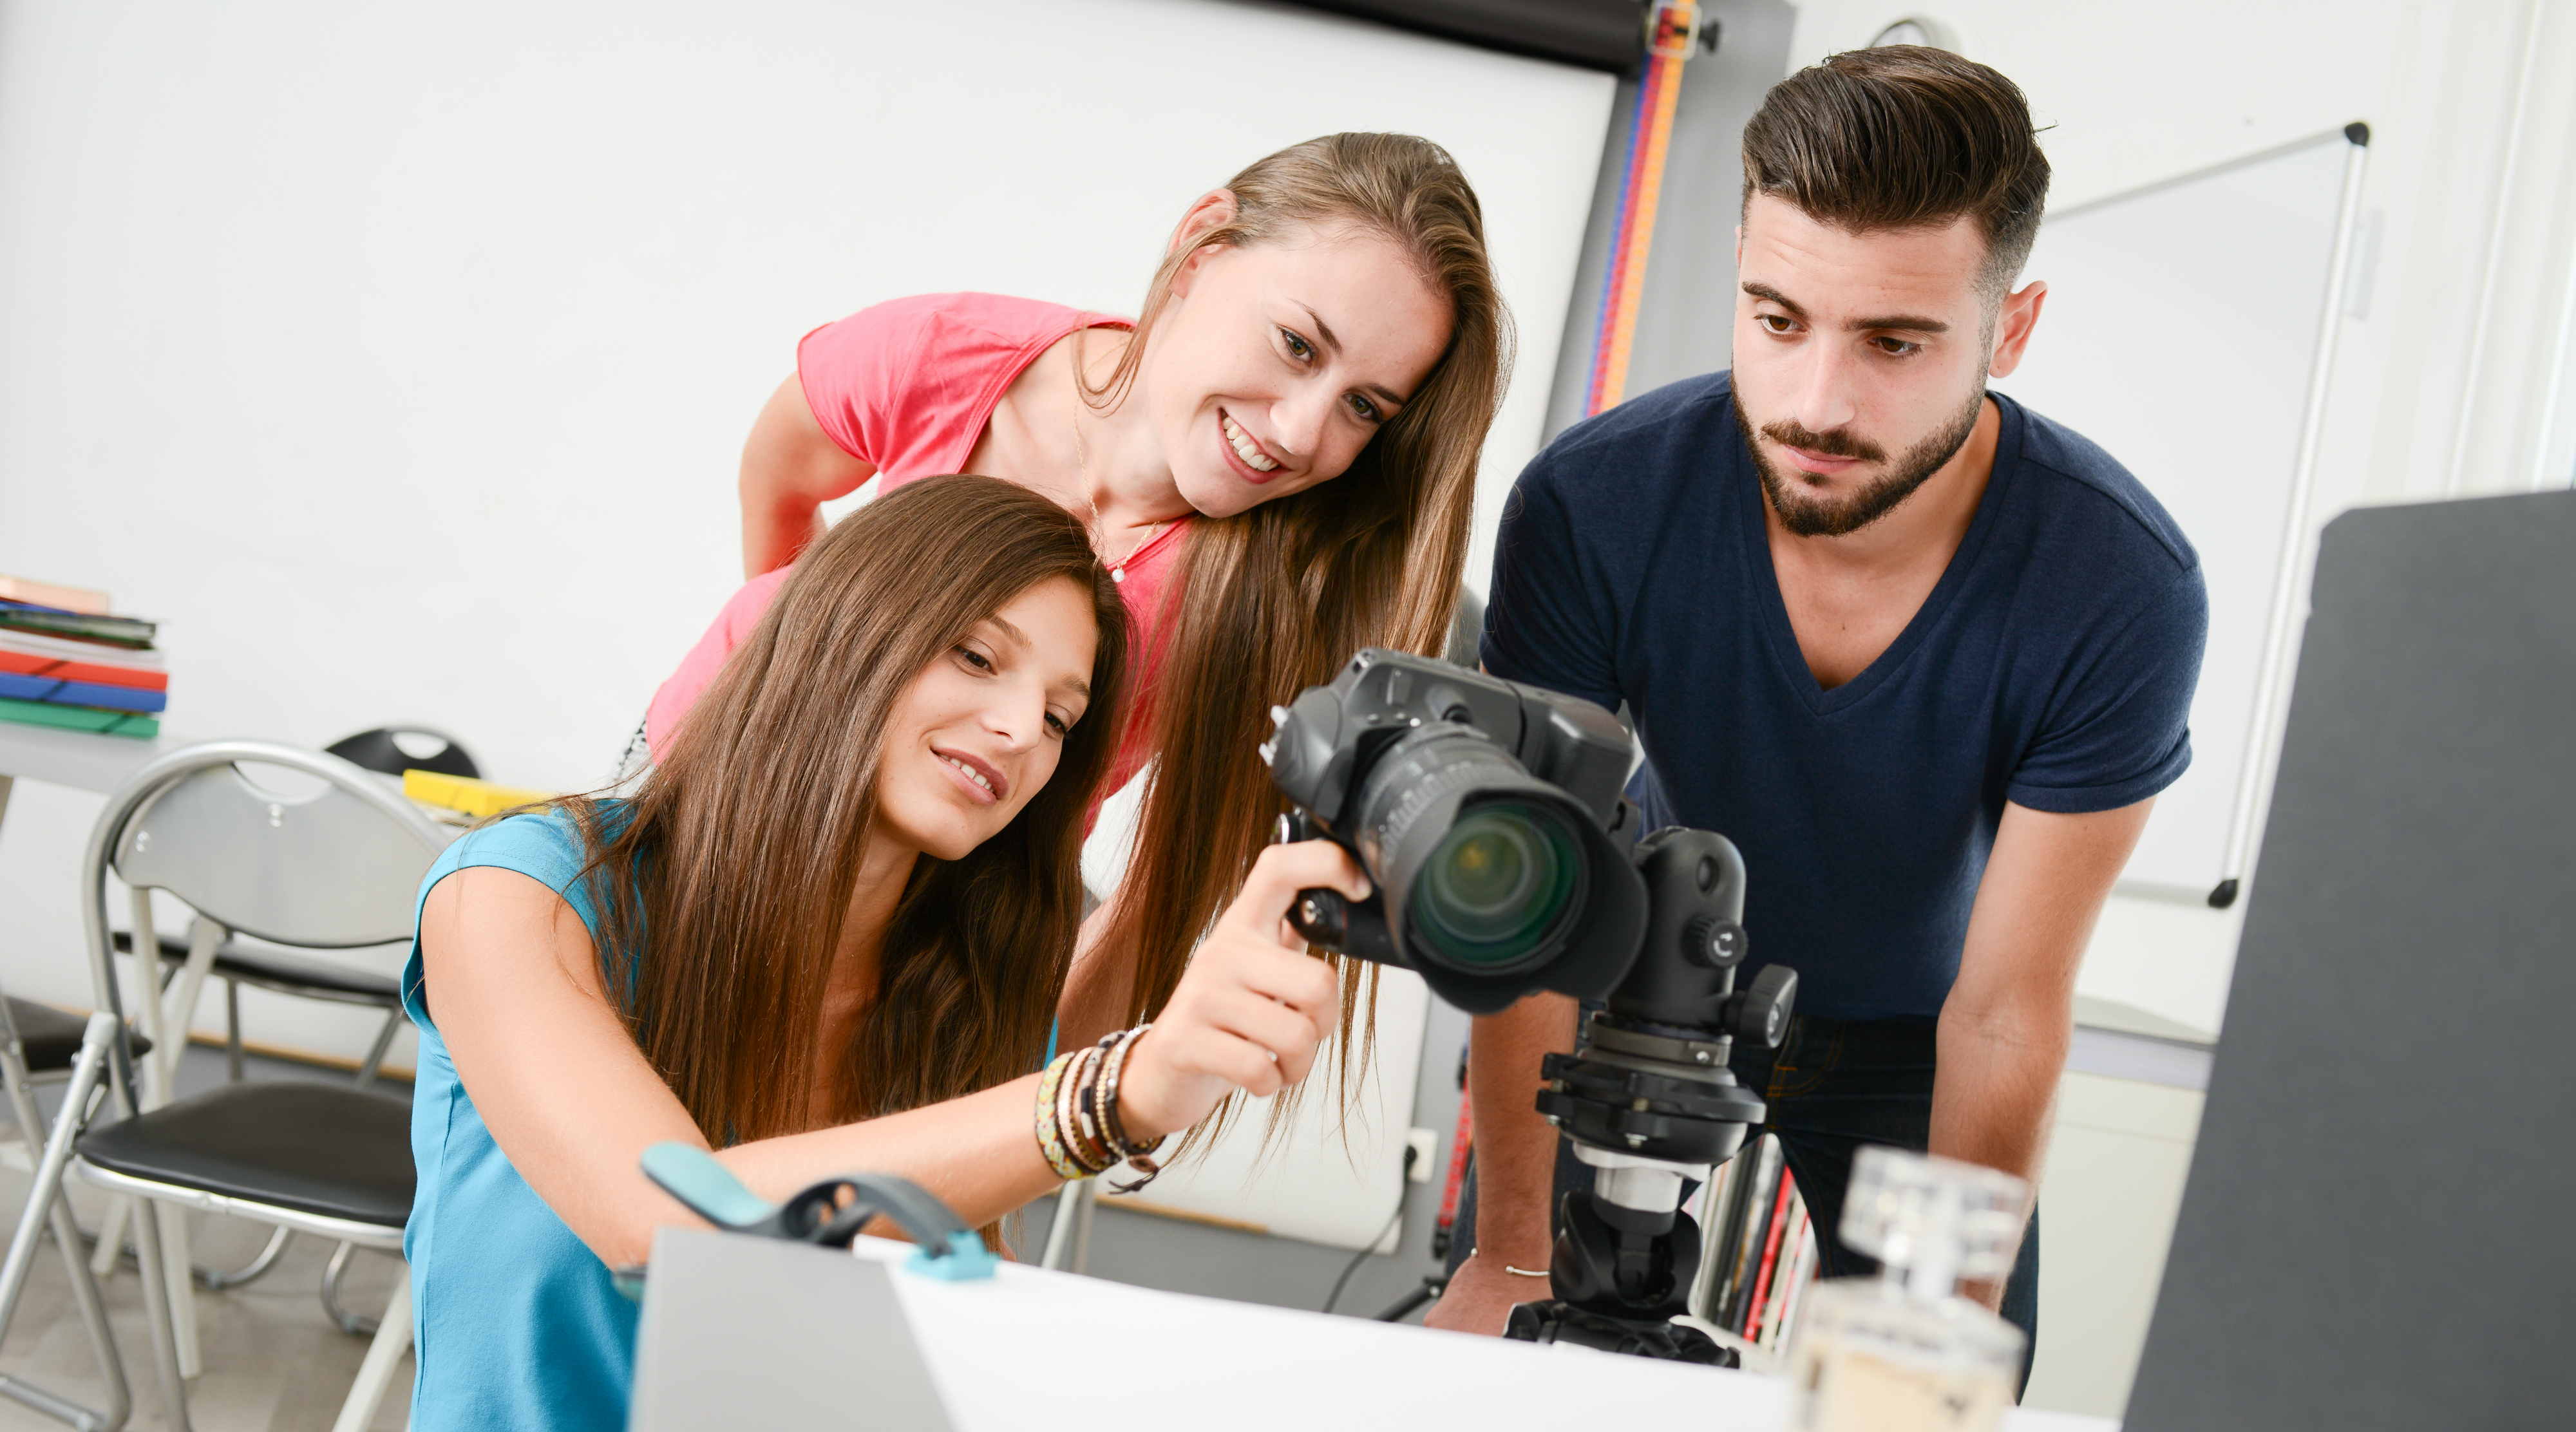 Why Photography is one of the Most Liking Activities in Students?